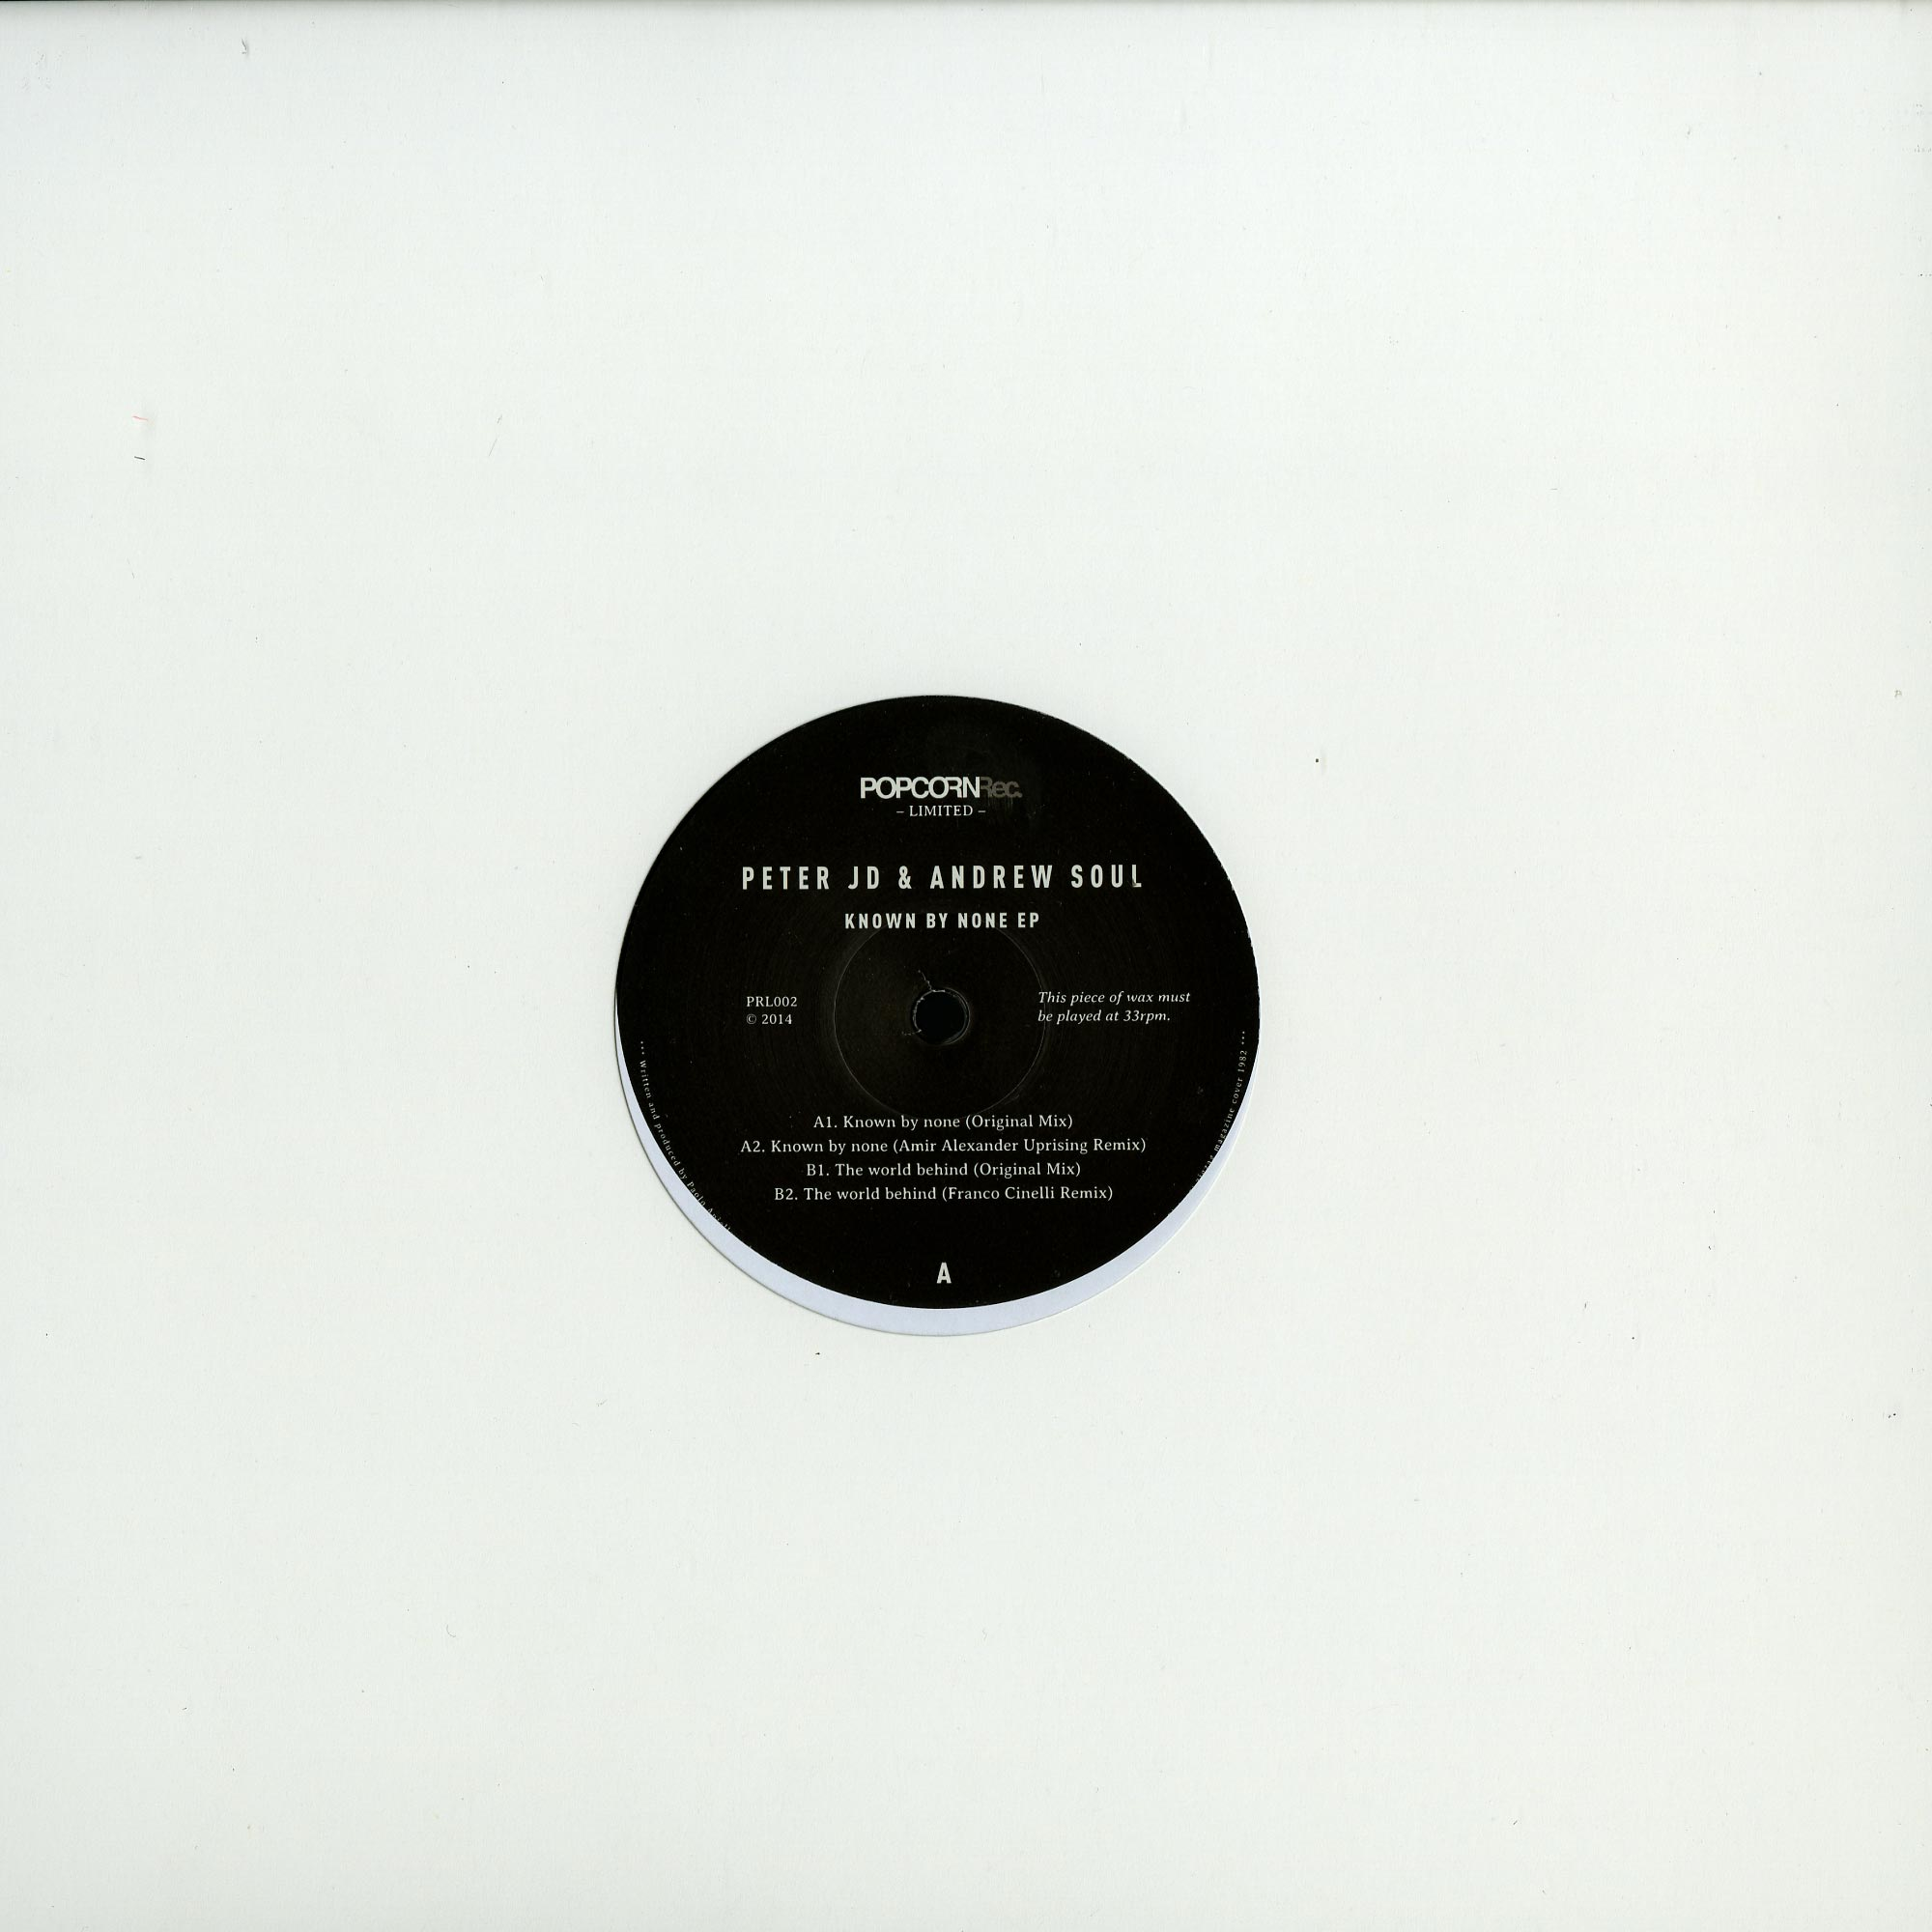 Peter JD and Andrew Soul - KNOWN BY NONE EP AMIR ALEXANDER REMIX